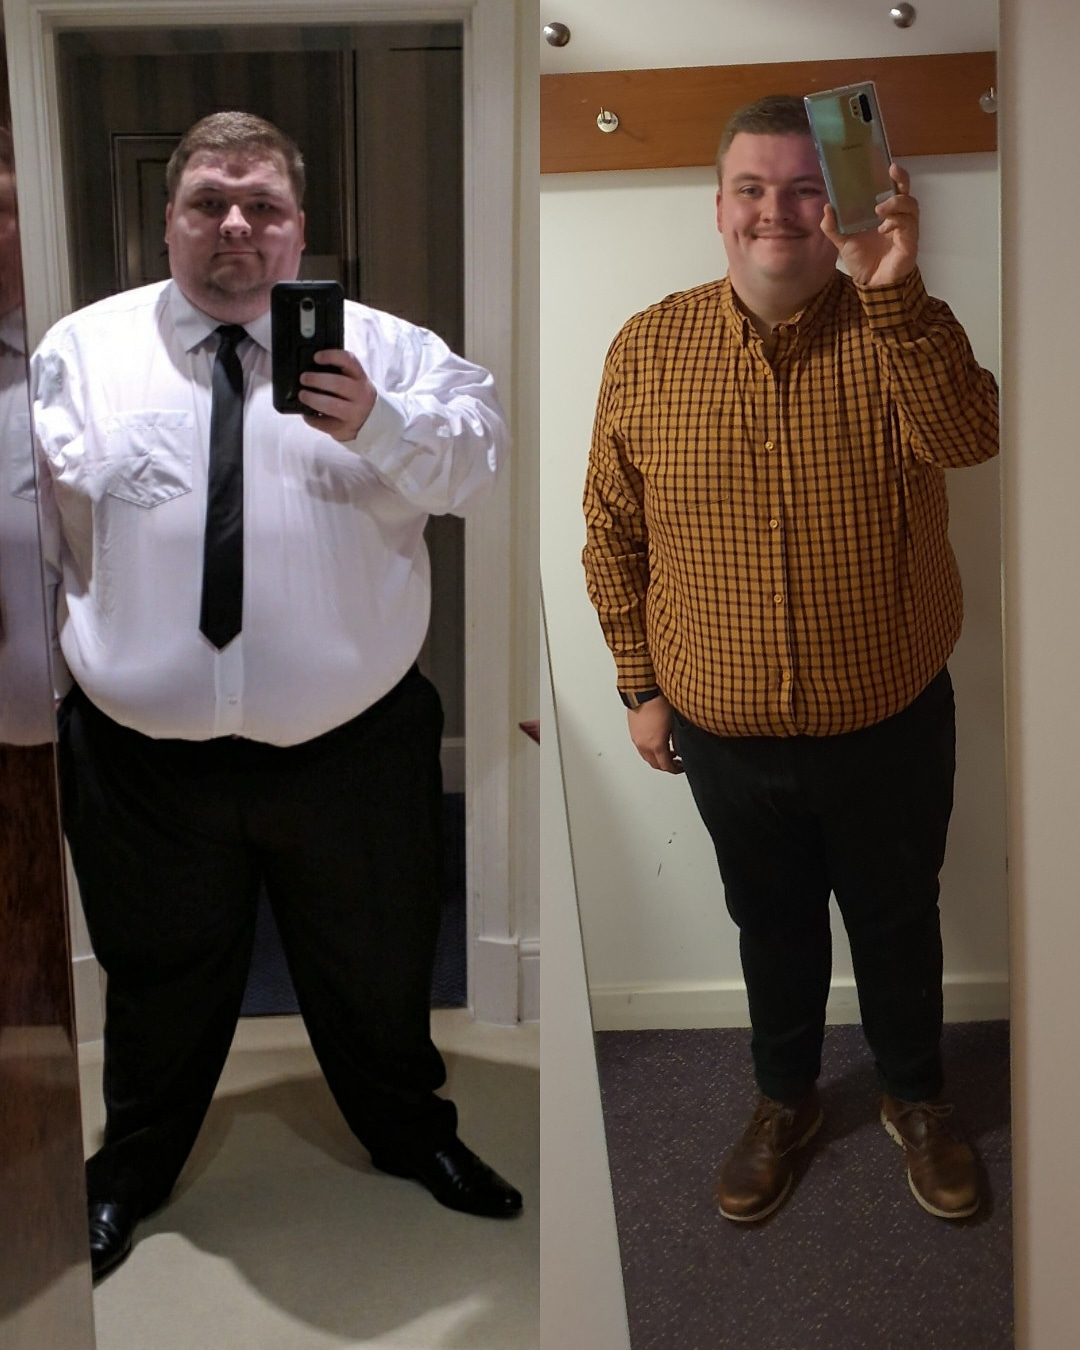 5 foot 8 Male Before and After 114 lbs Weight Loss 392 lbs to 278 lbs